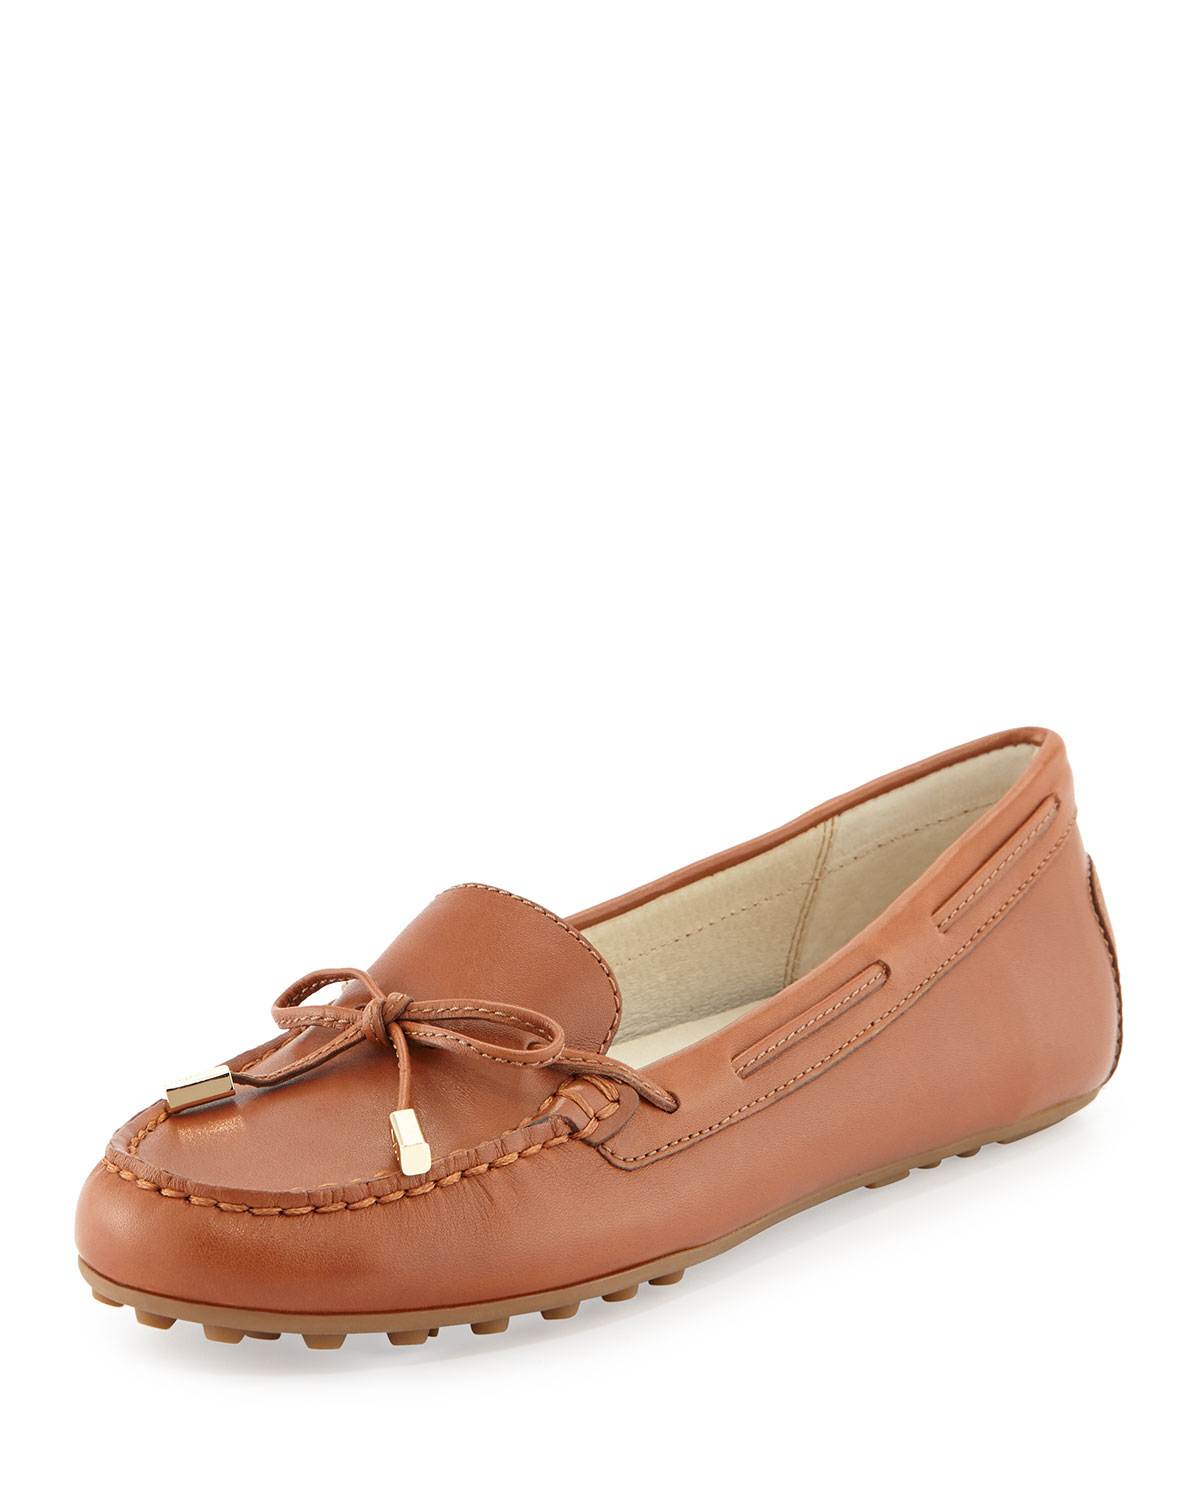 ce6e63b8f212b Daisy Leather Moccasin Loafer